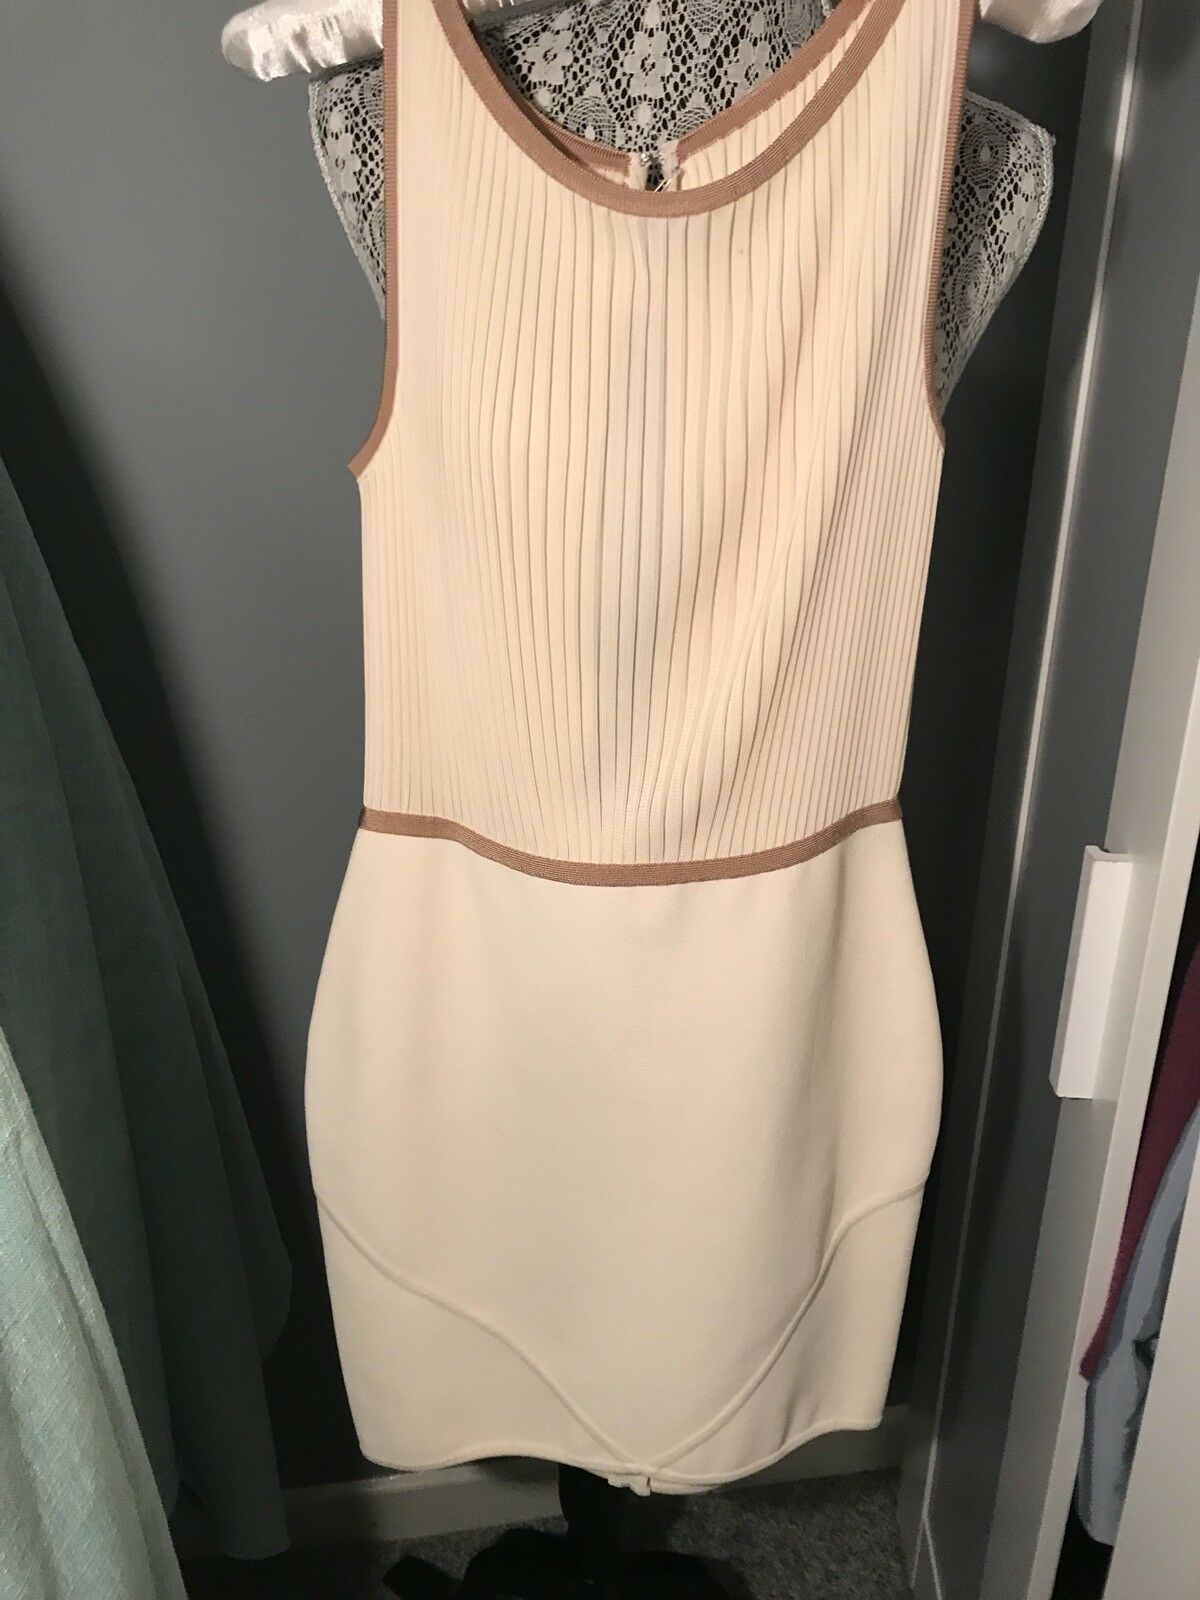 Herve leger dress Tan Size L Amazing Sexy Fitted dress Authentic Bought In Begas